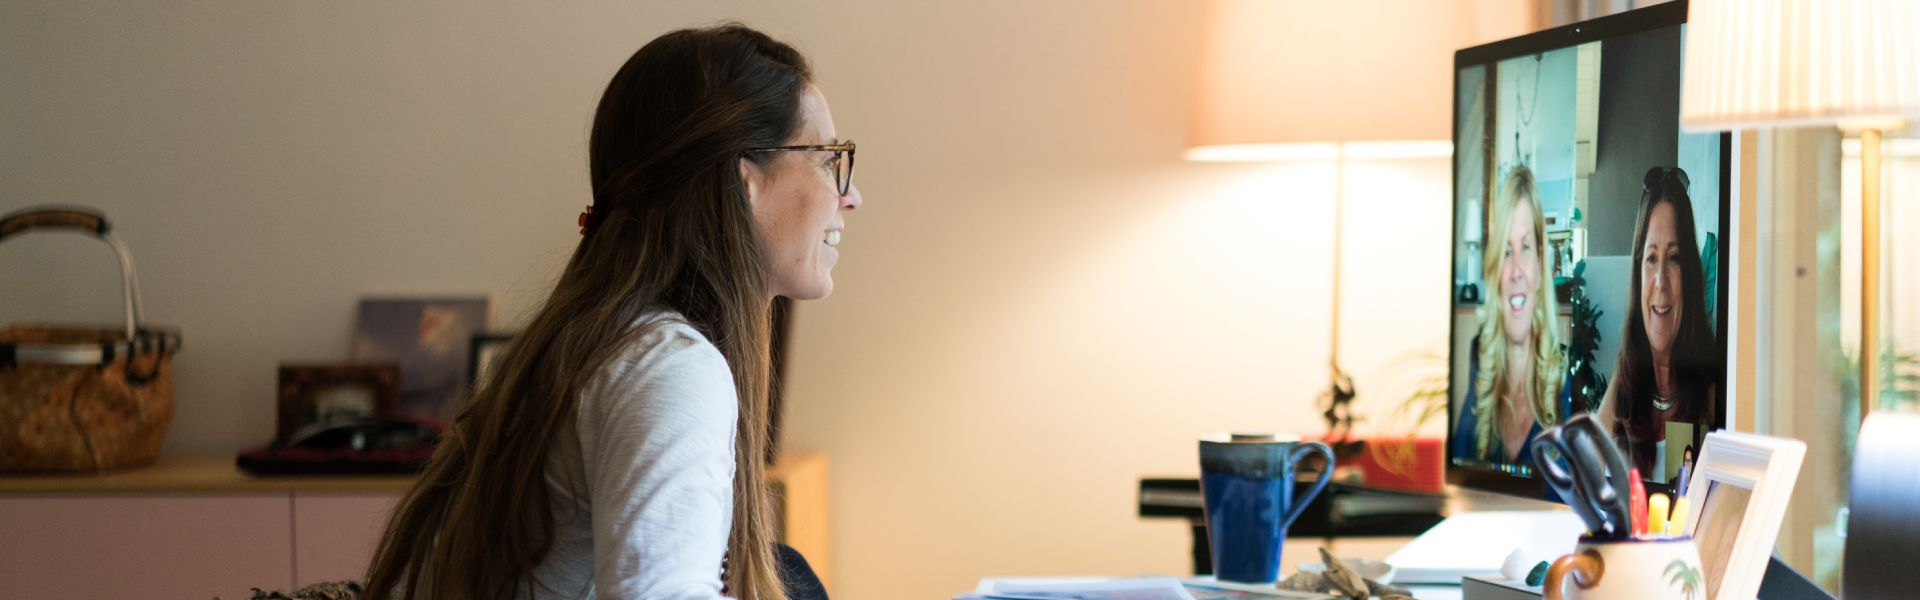 Photo of woman working at computer